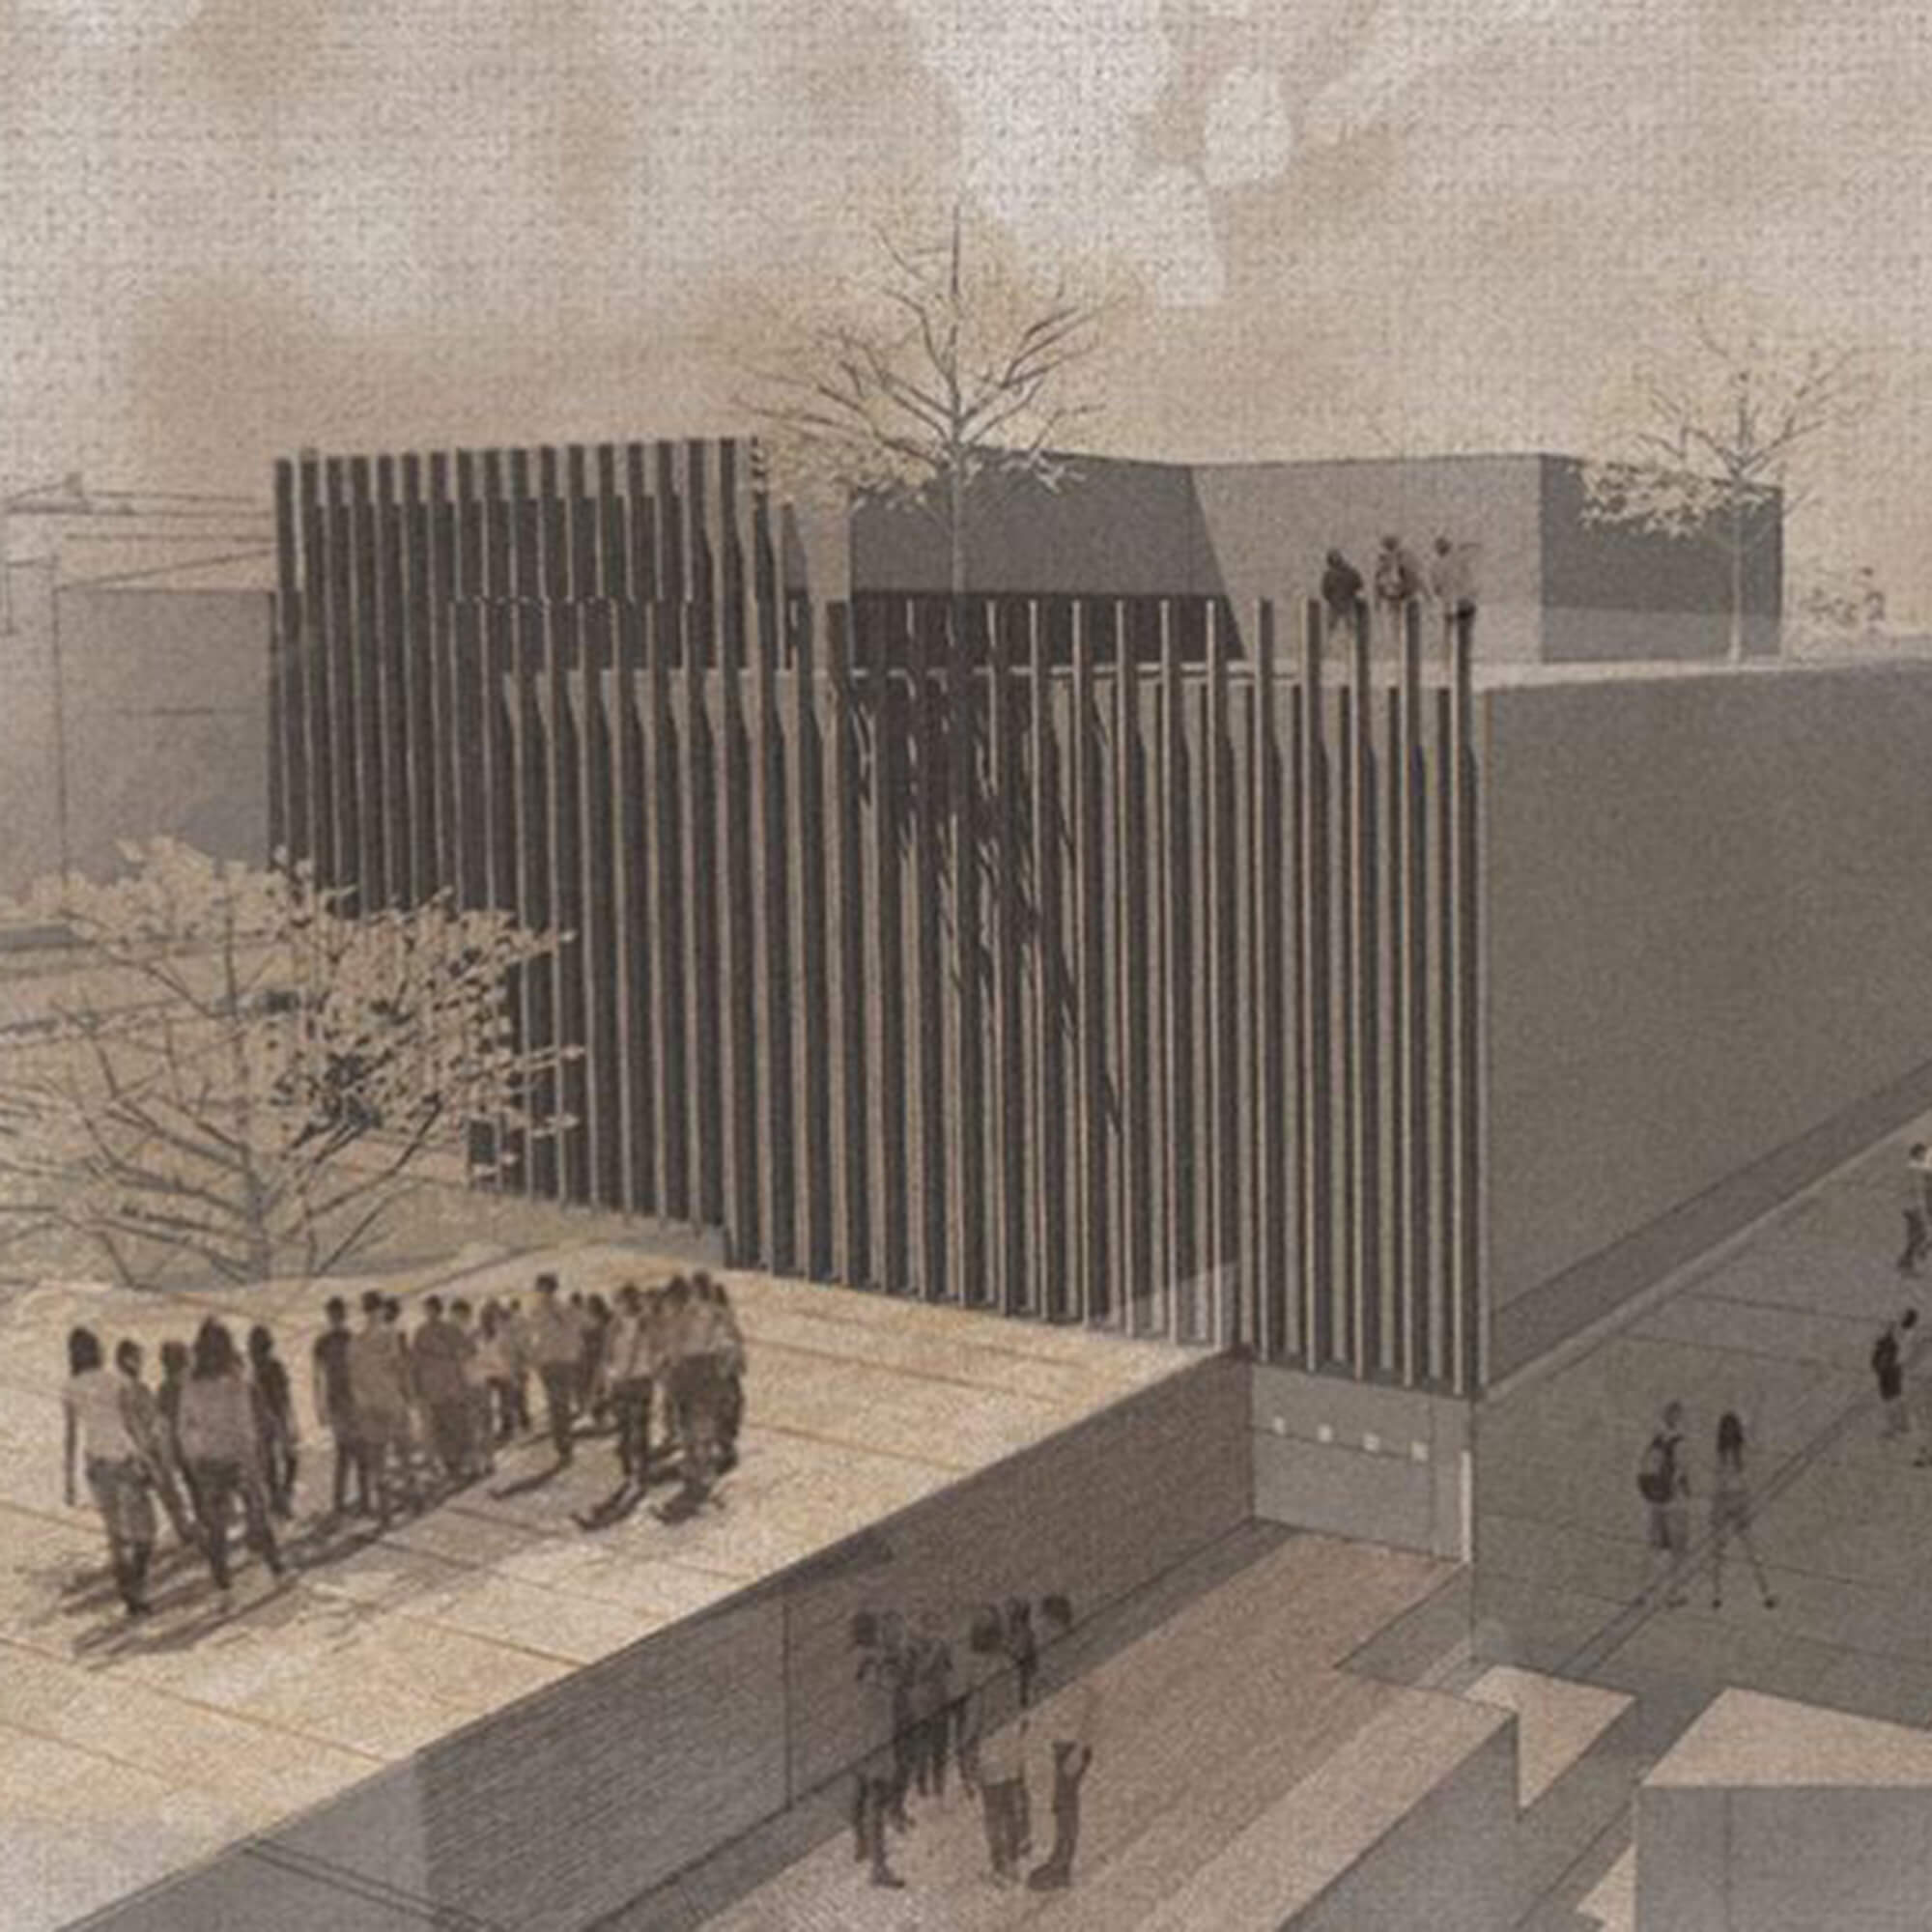 A drawing of the outside of a building with people in groups and walking around it.